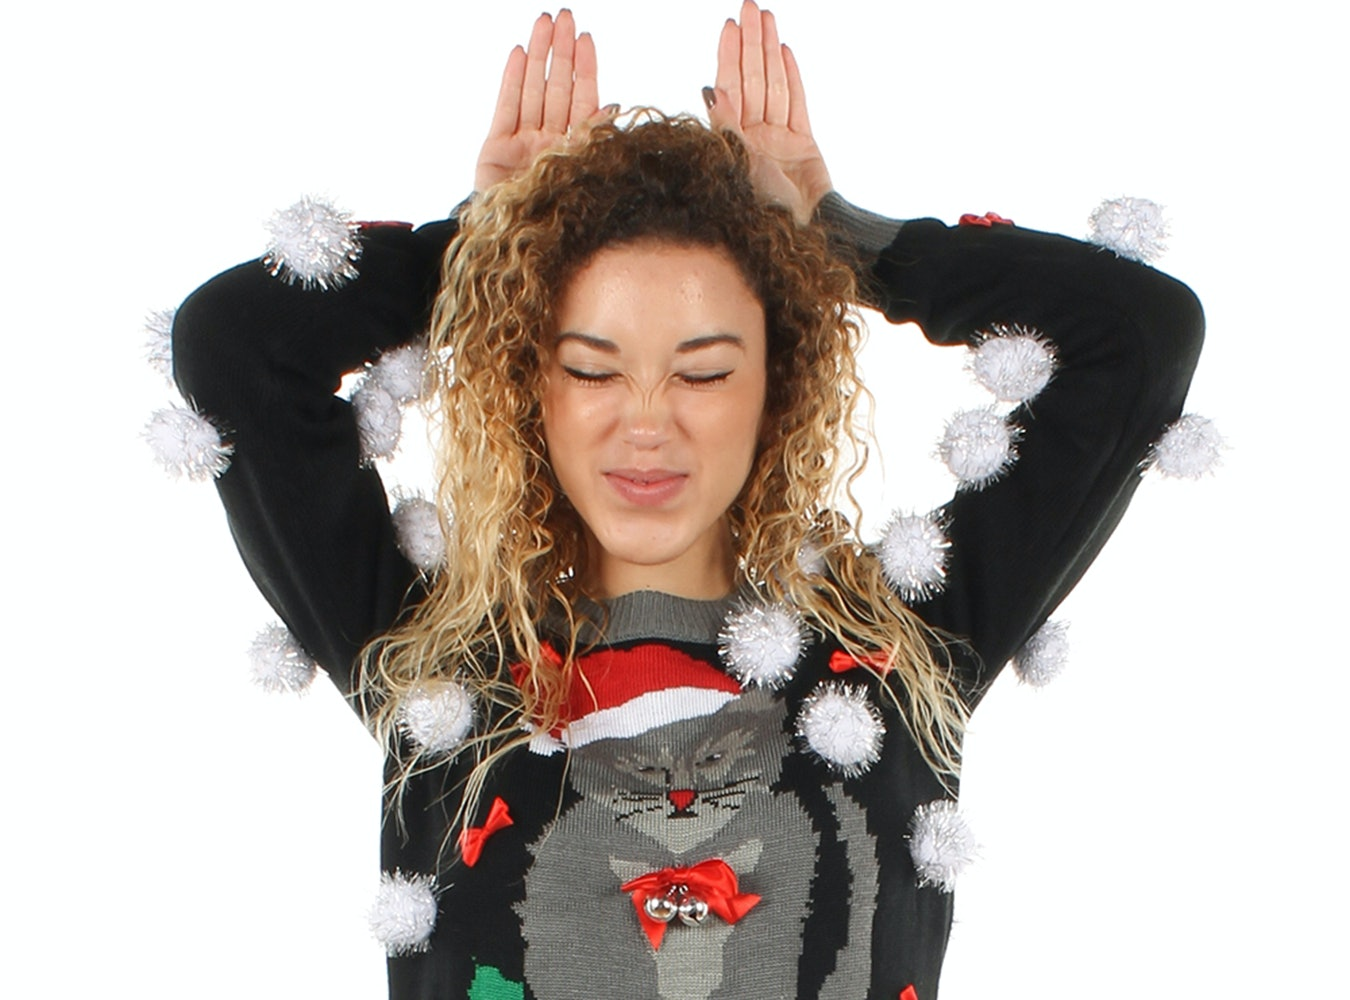 12 Places To Buy An Ugly Christmas Sweater That's So Bad It's Perfect